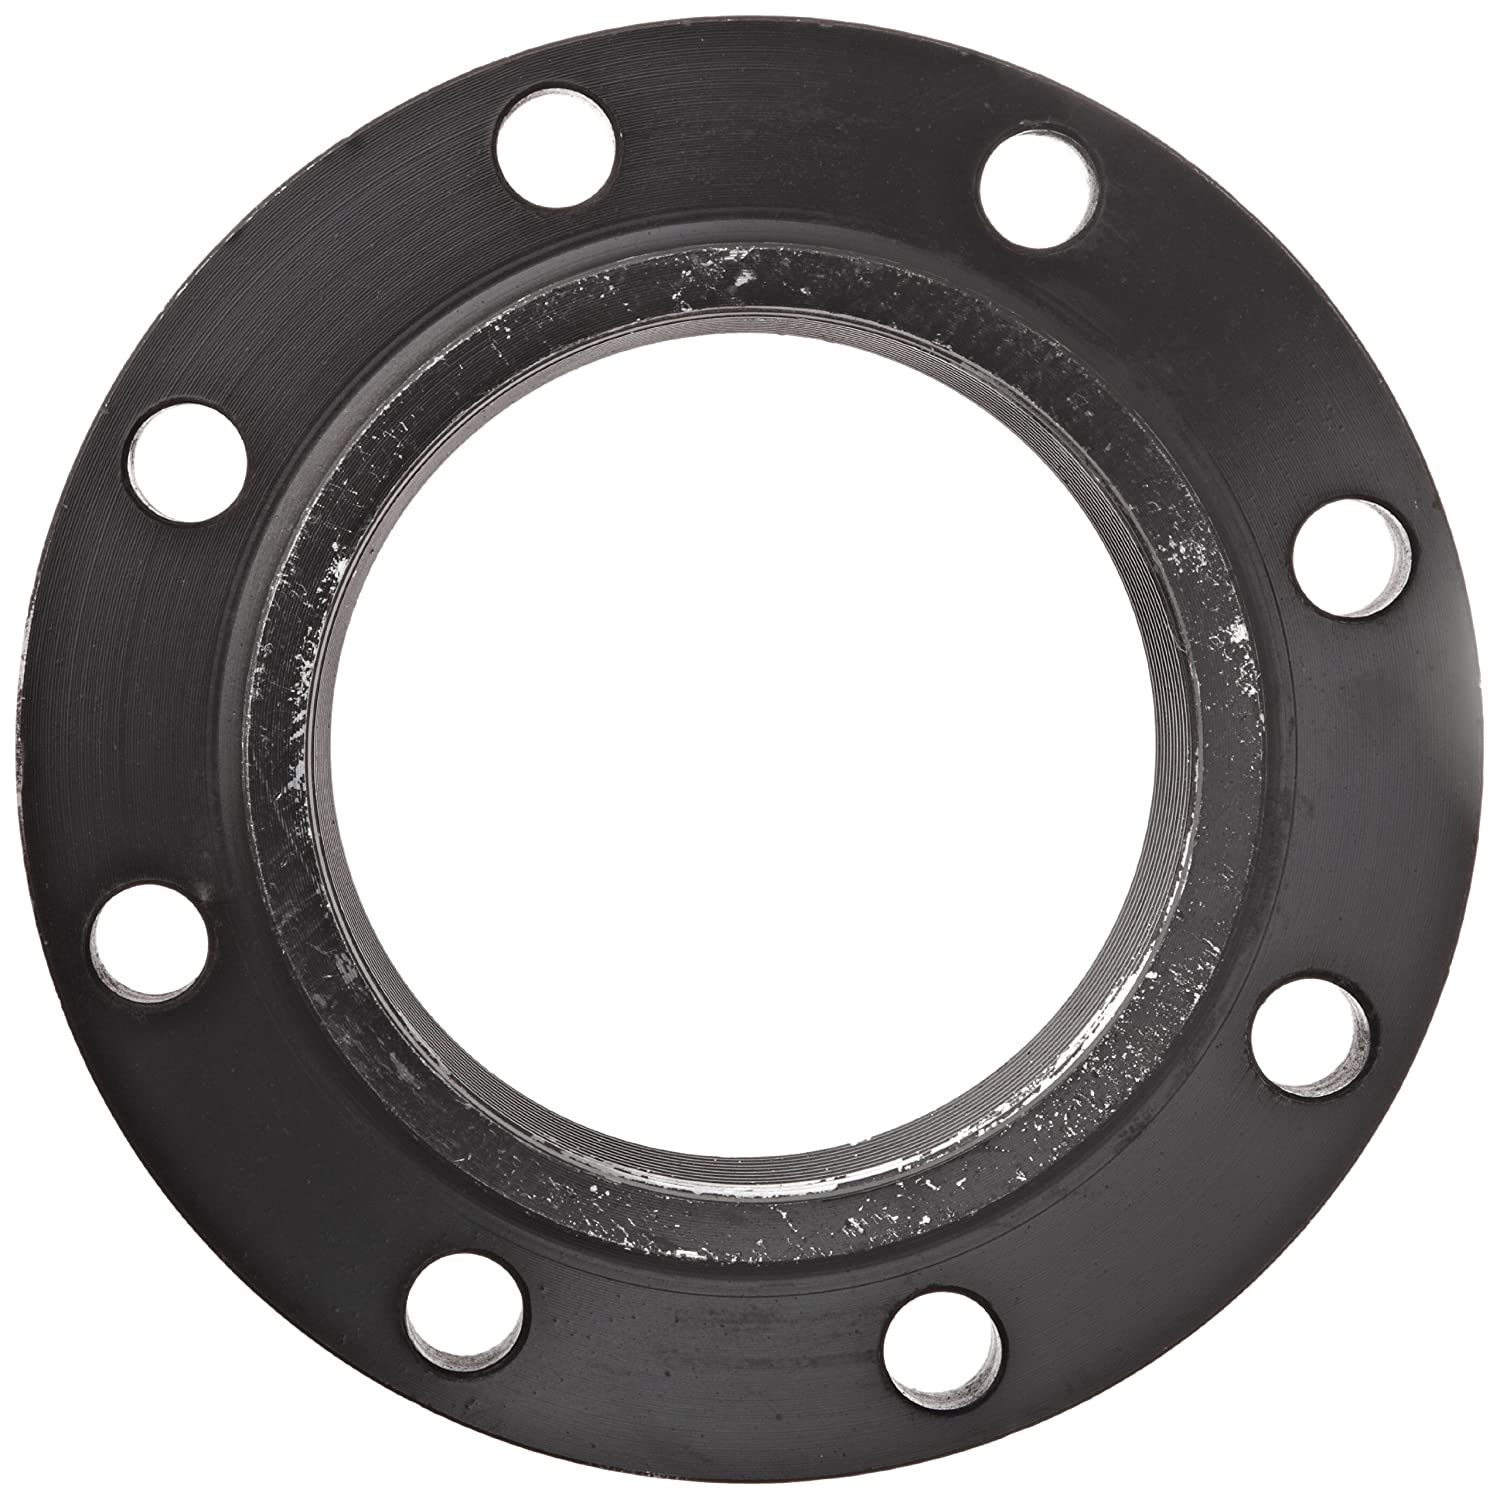 6 NPT Female 150lbs ASA Forged Flange Dixon T600 Carbon Steel Pipe and Welding Fitting